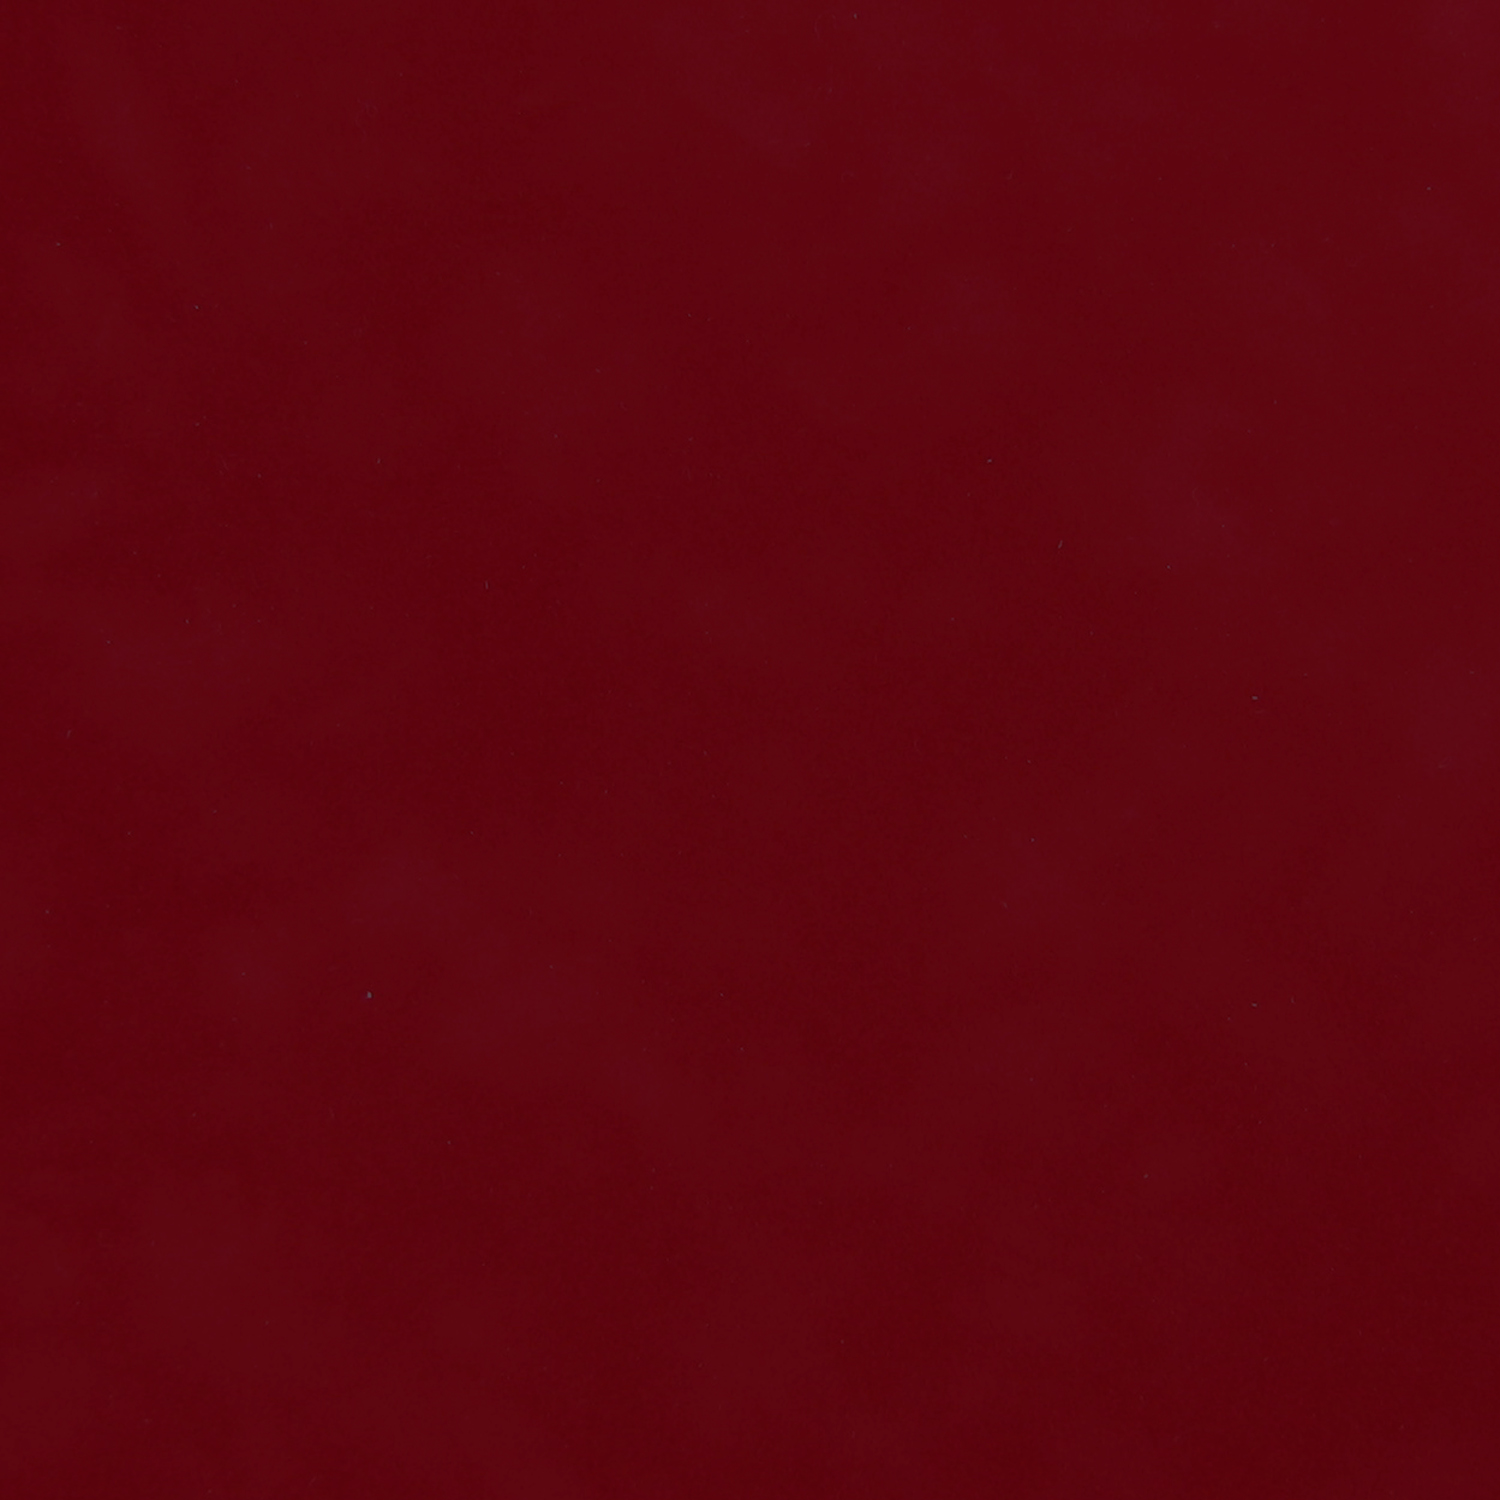 Colour slide show red - Color schemes with maroon ...